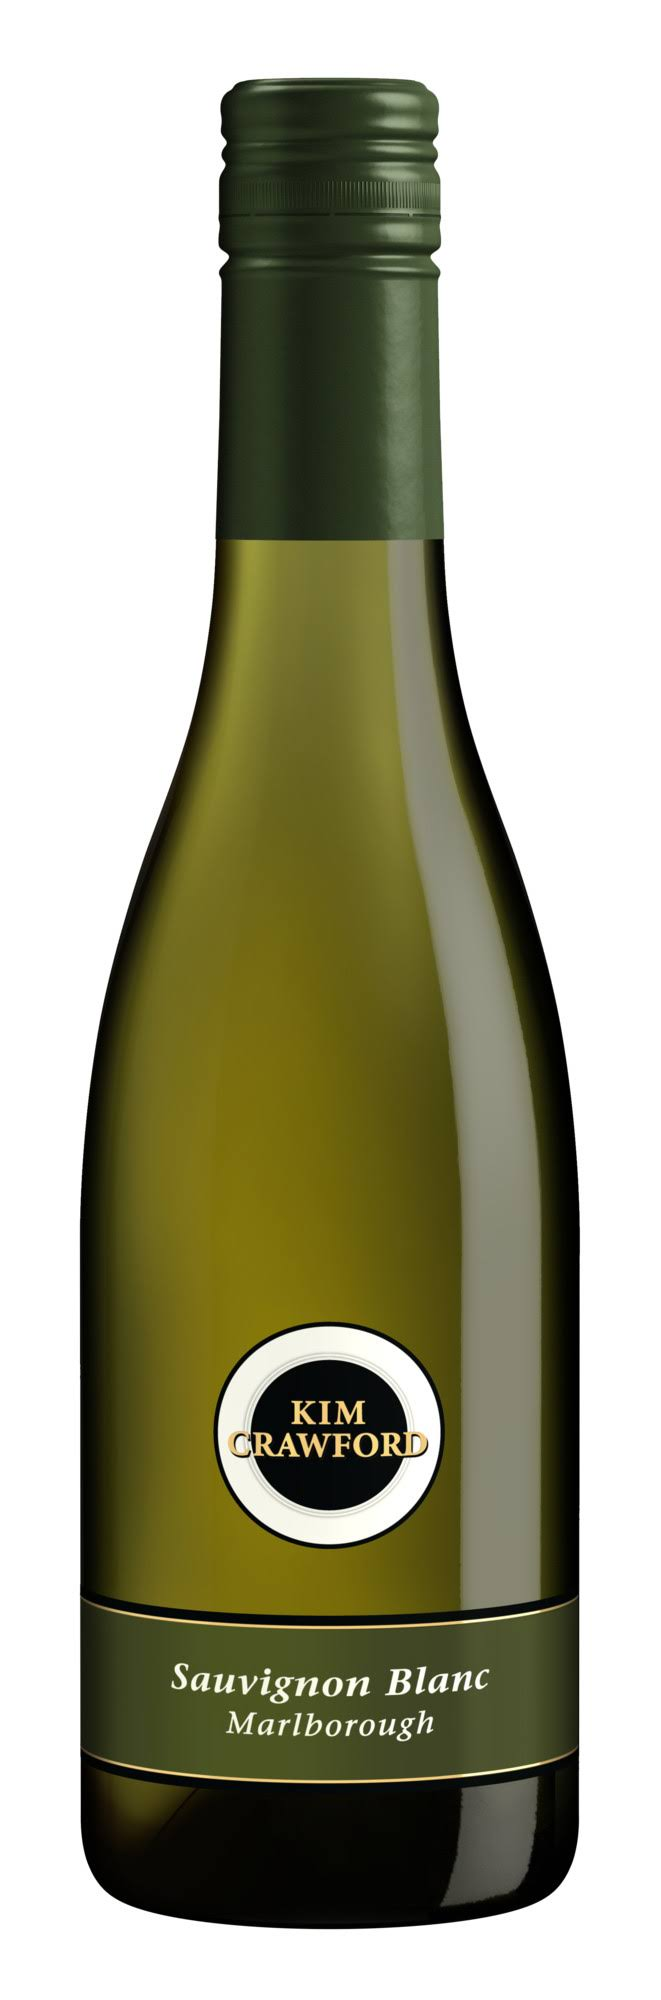 Kim Crawford Sauvignon Blanc Marlborough White Wine - South Island, New Zealand